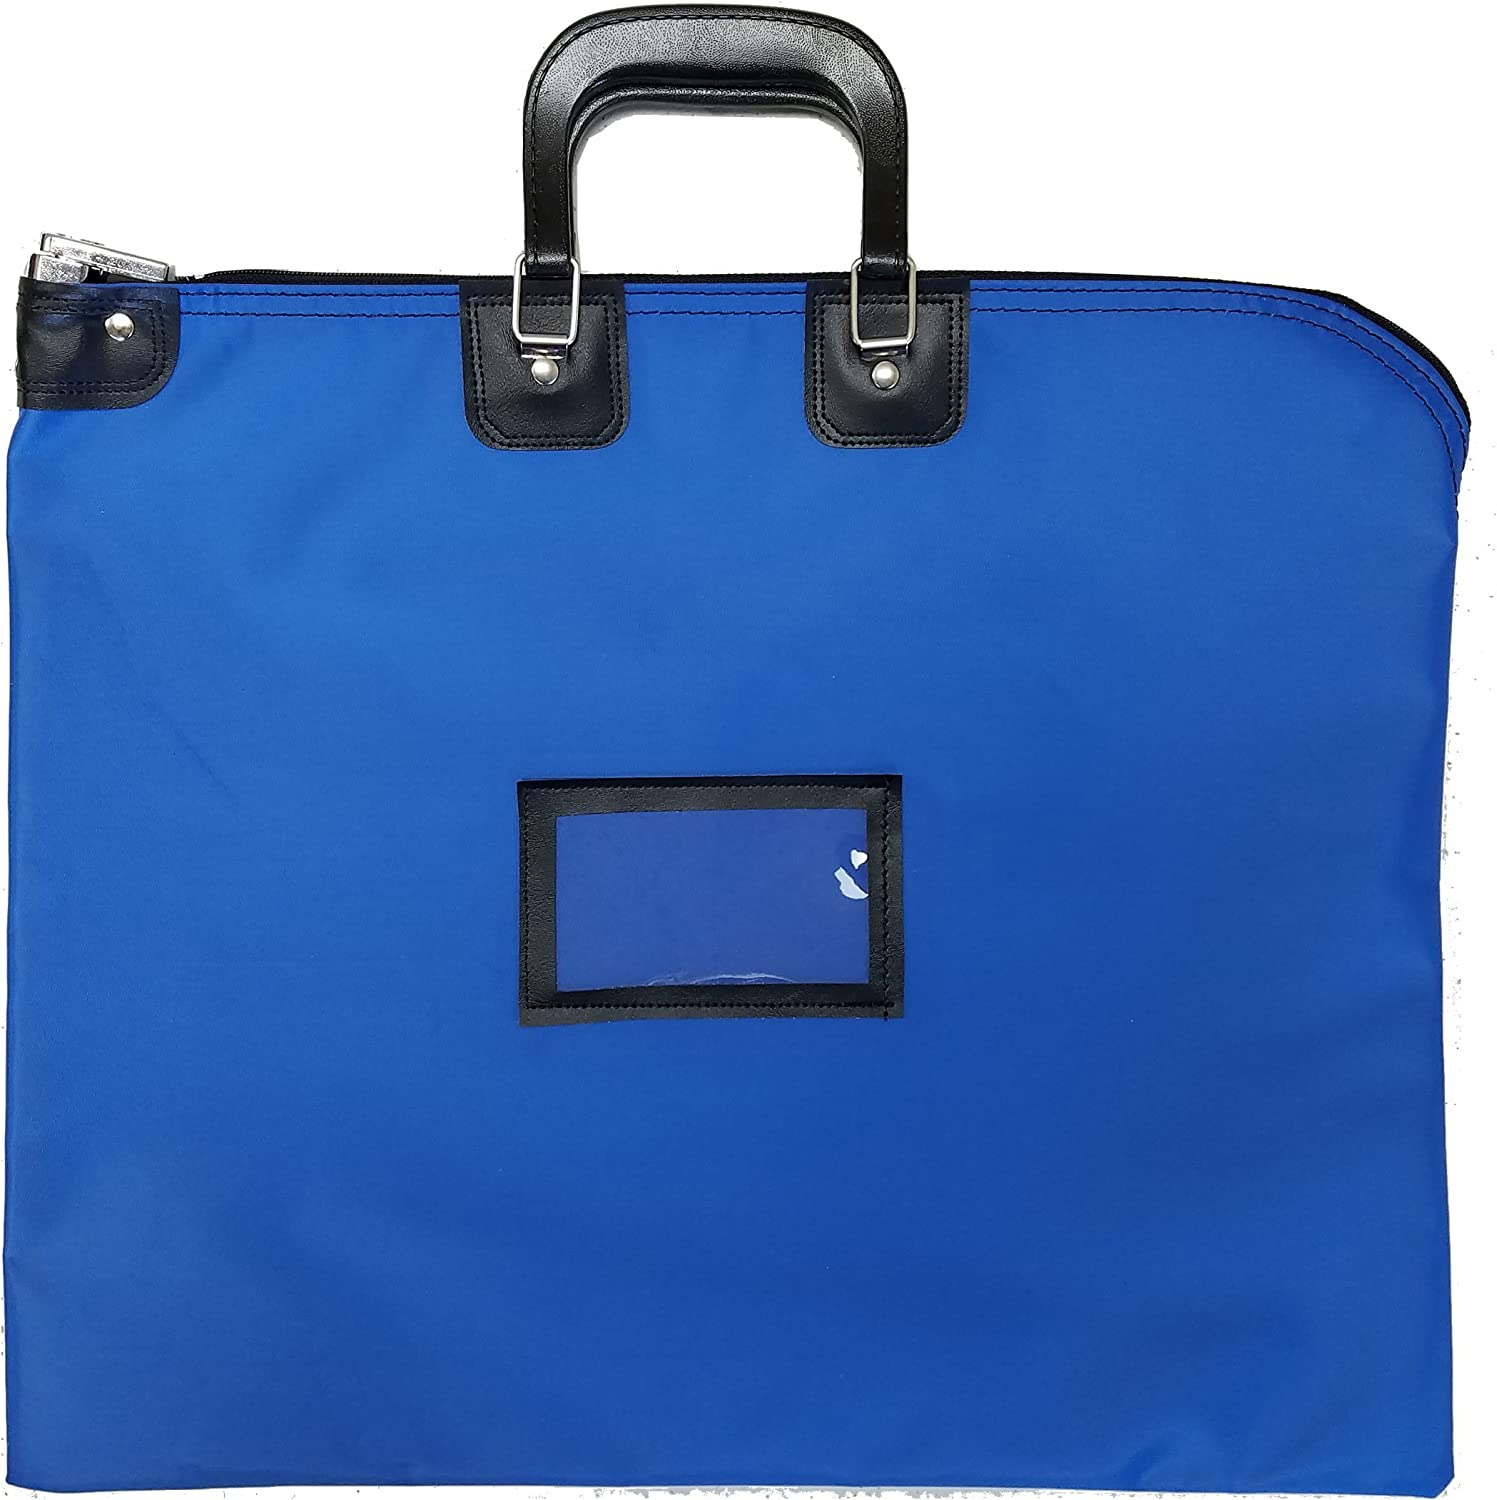 Red Locking Document HIPAA Bag 16 x 20 with Handles